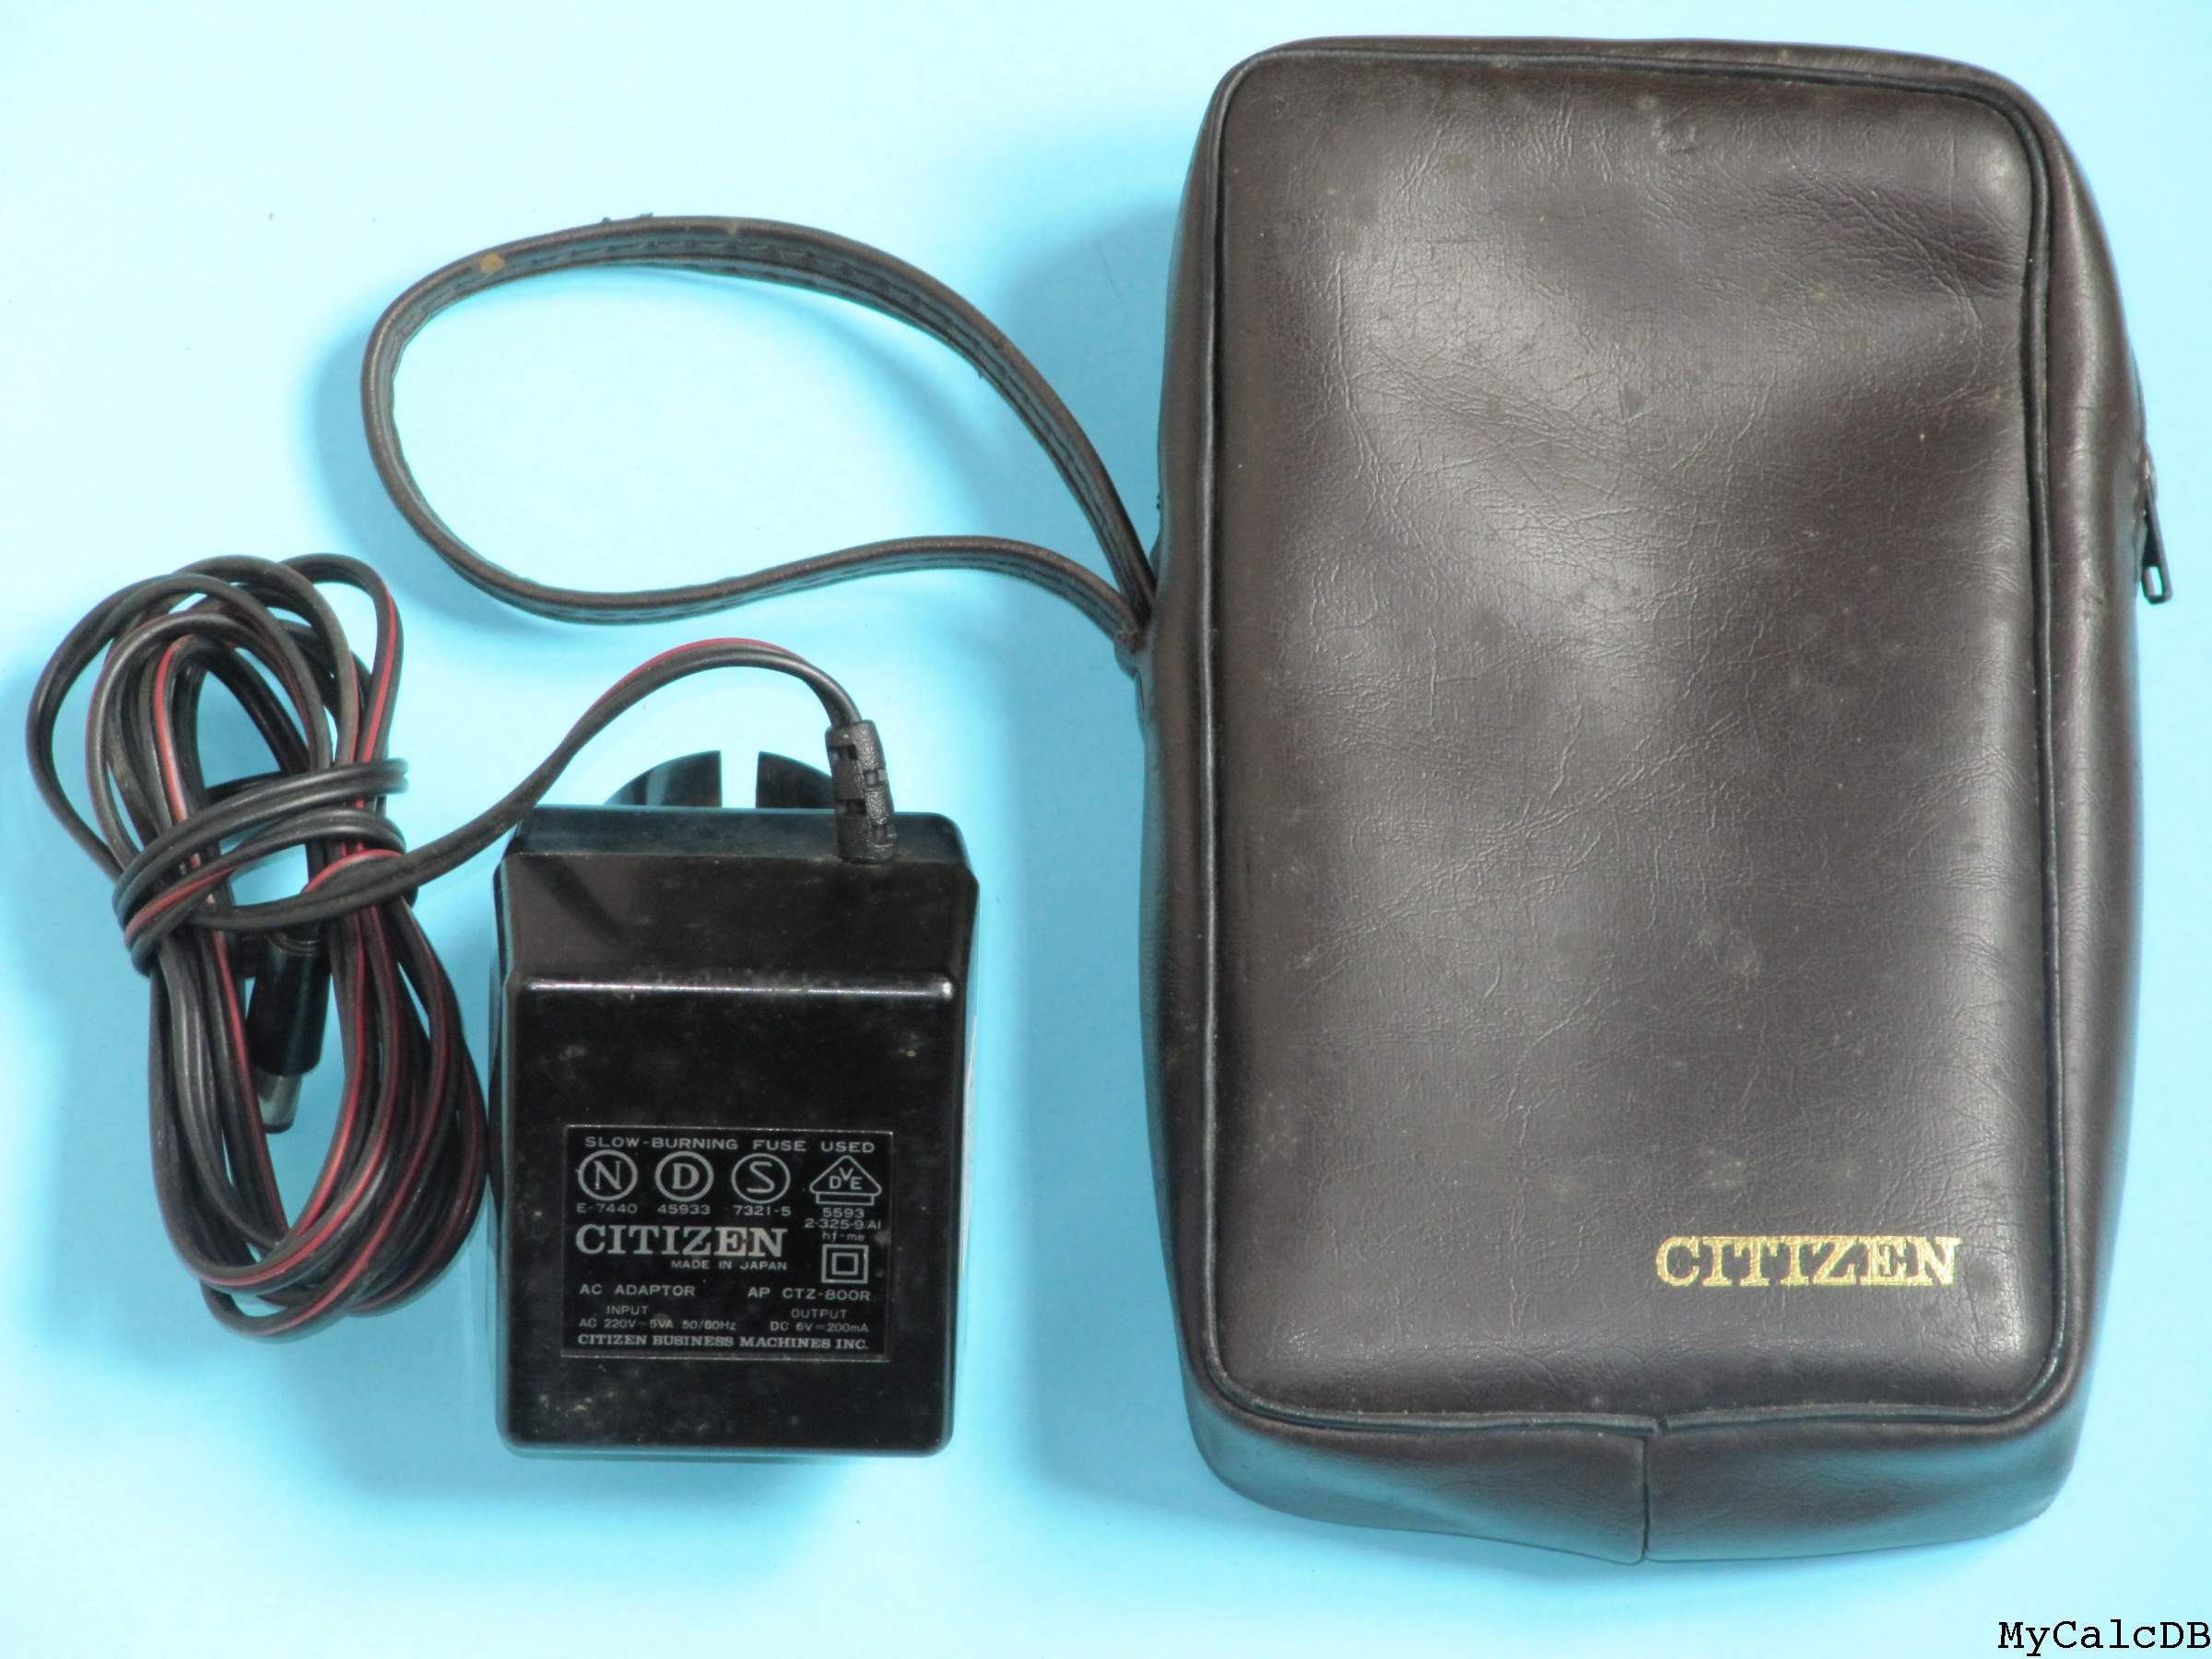 Citizen 820R